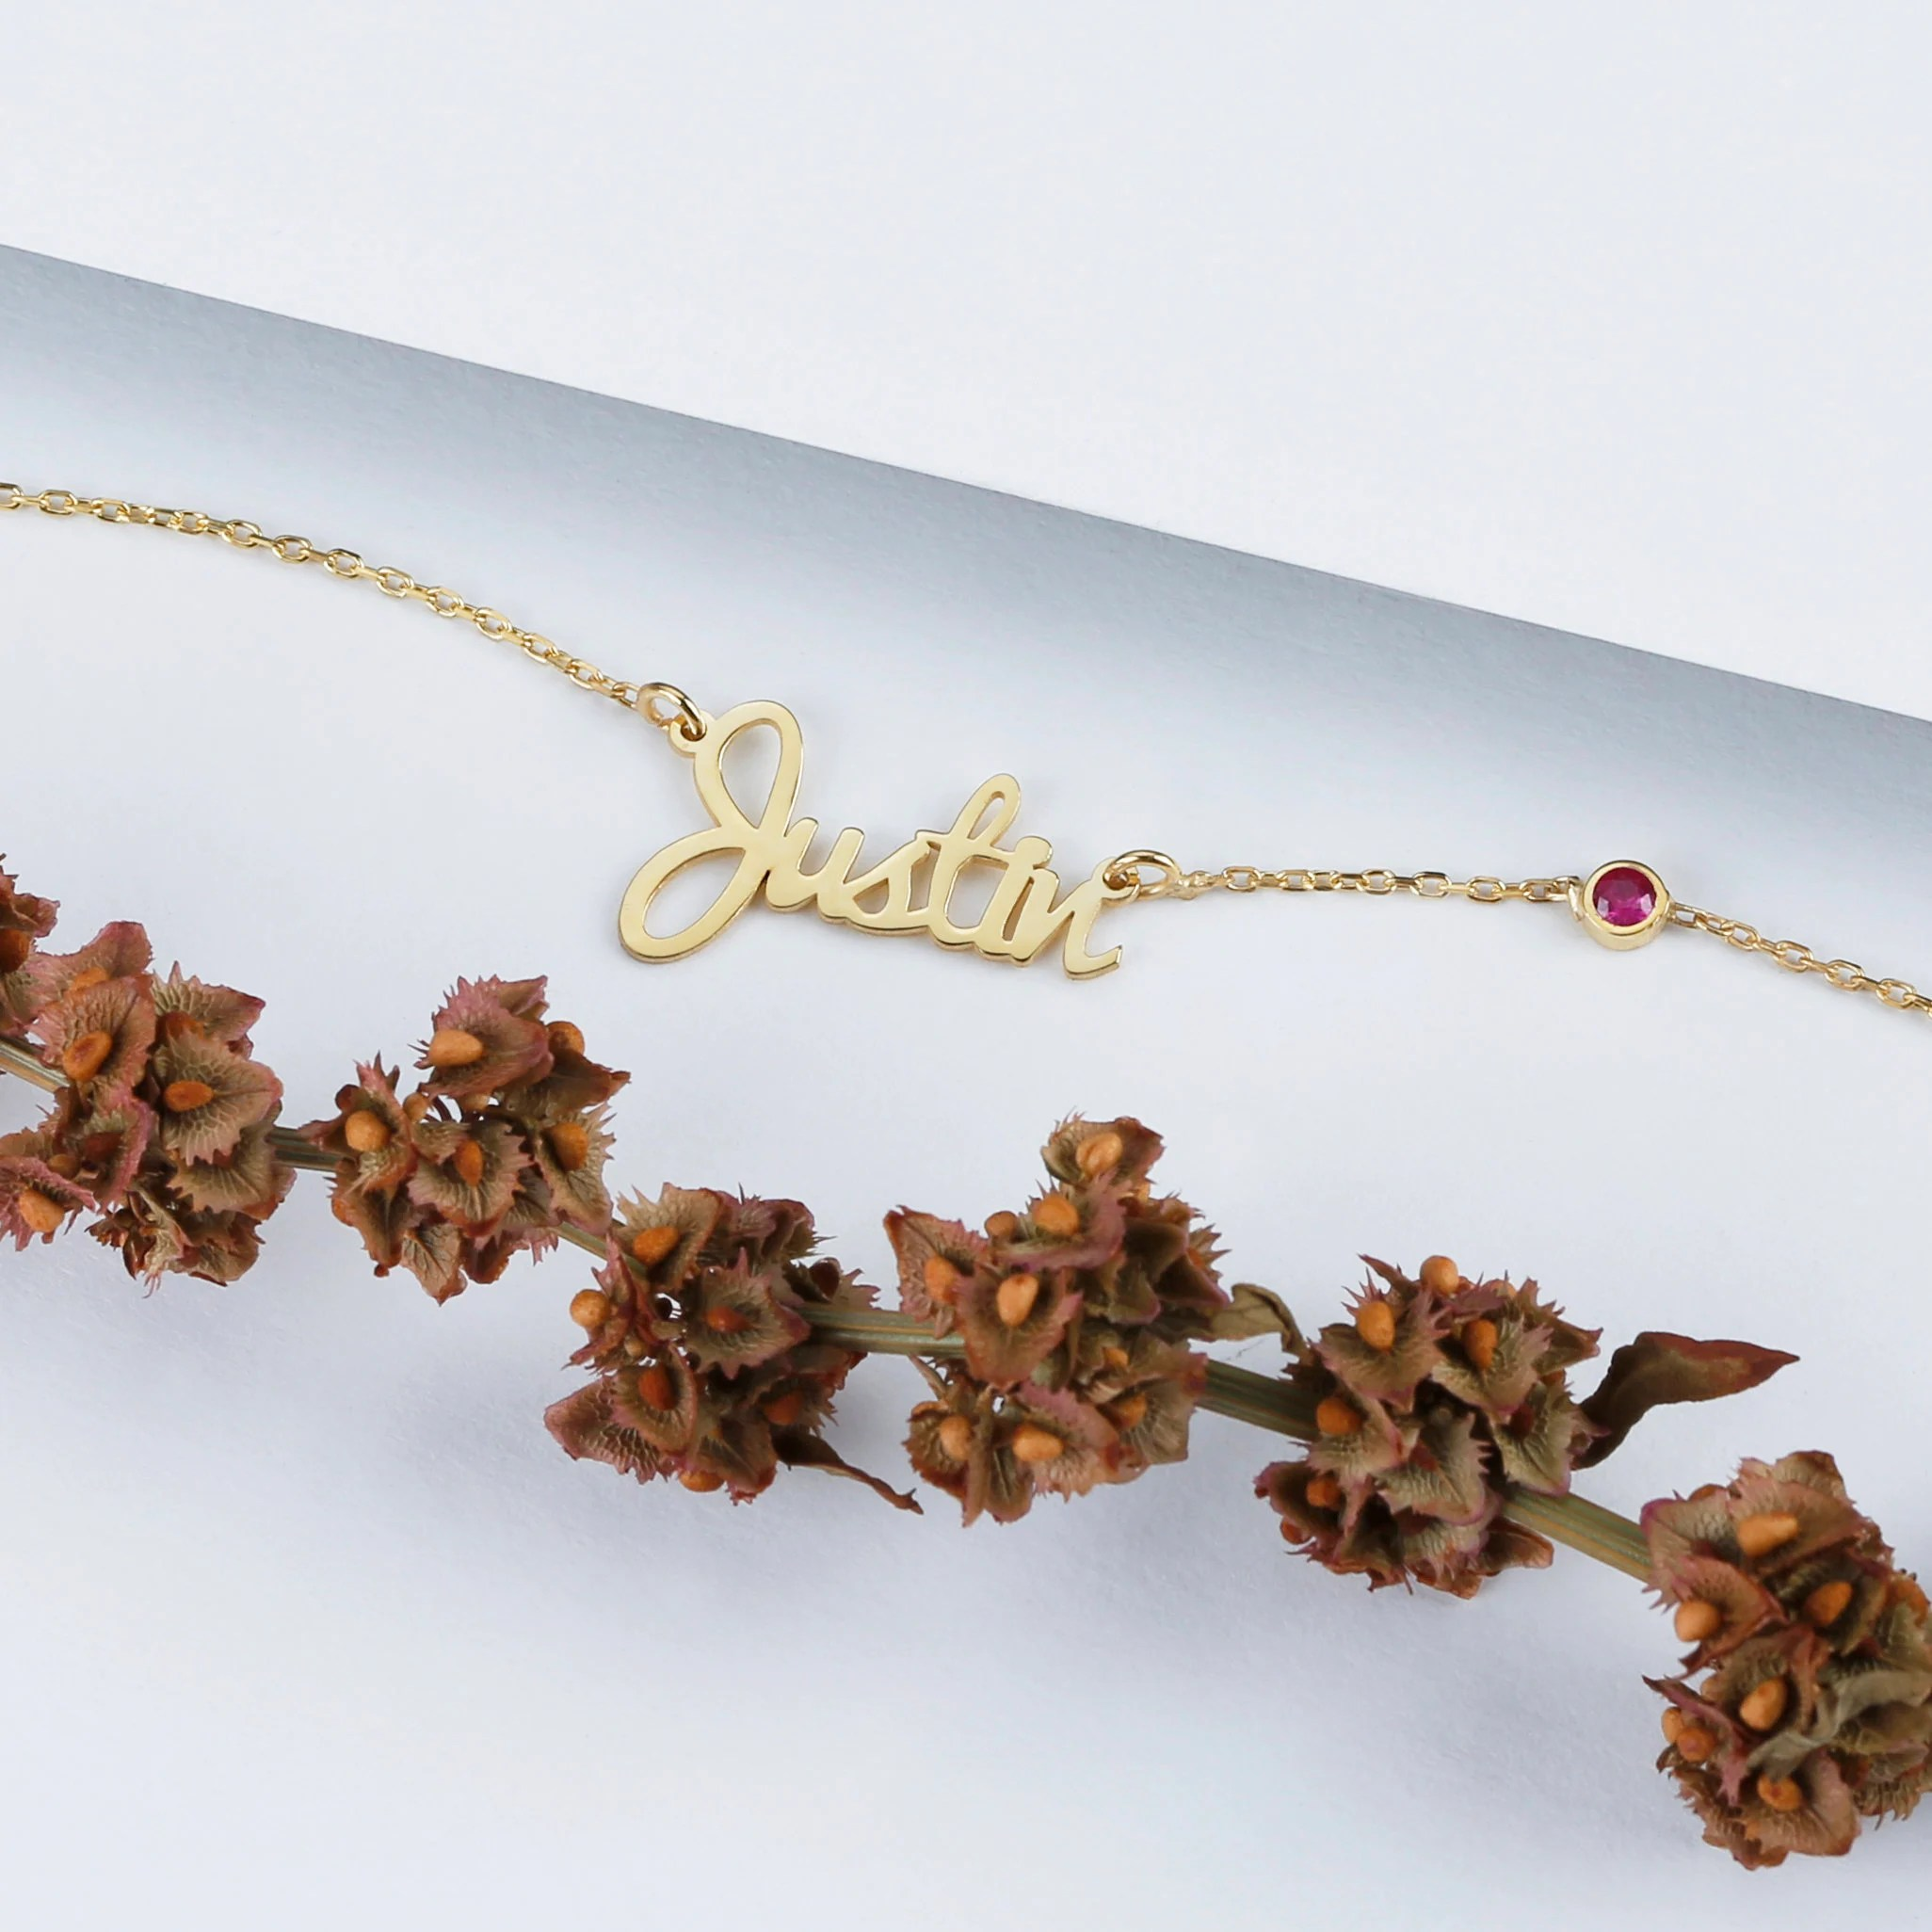 Personalized Name Necklace  Silver  Gold  Rose Gold  Gift image 5